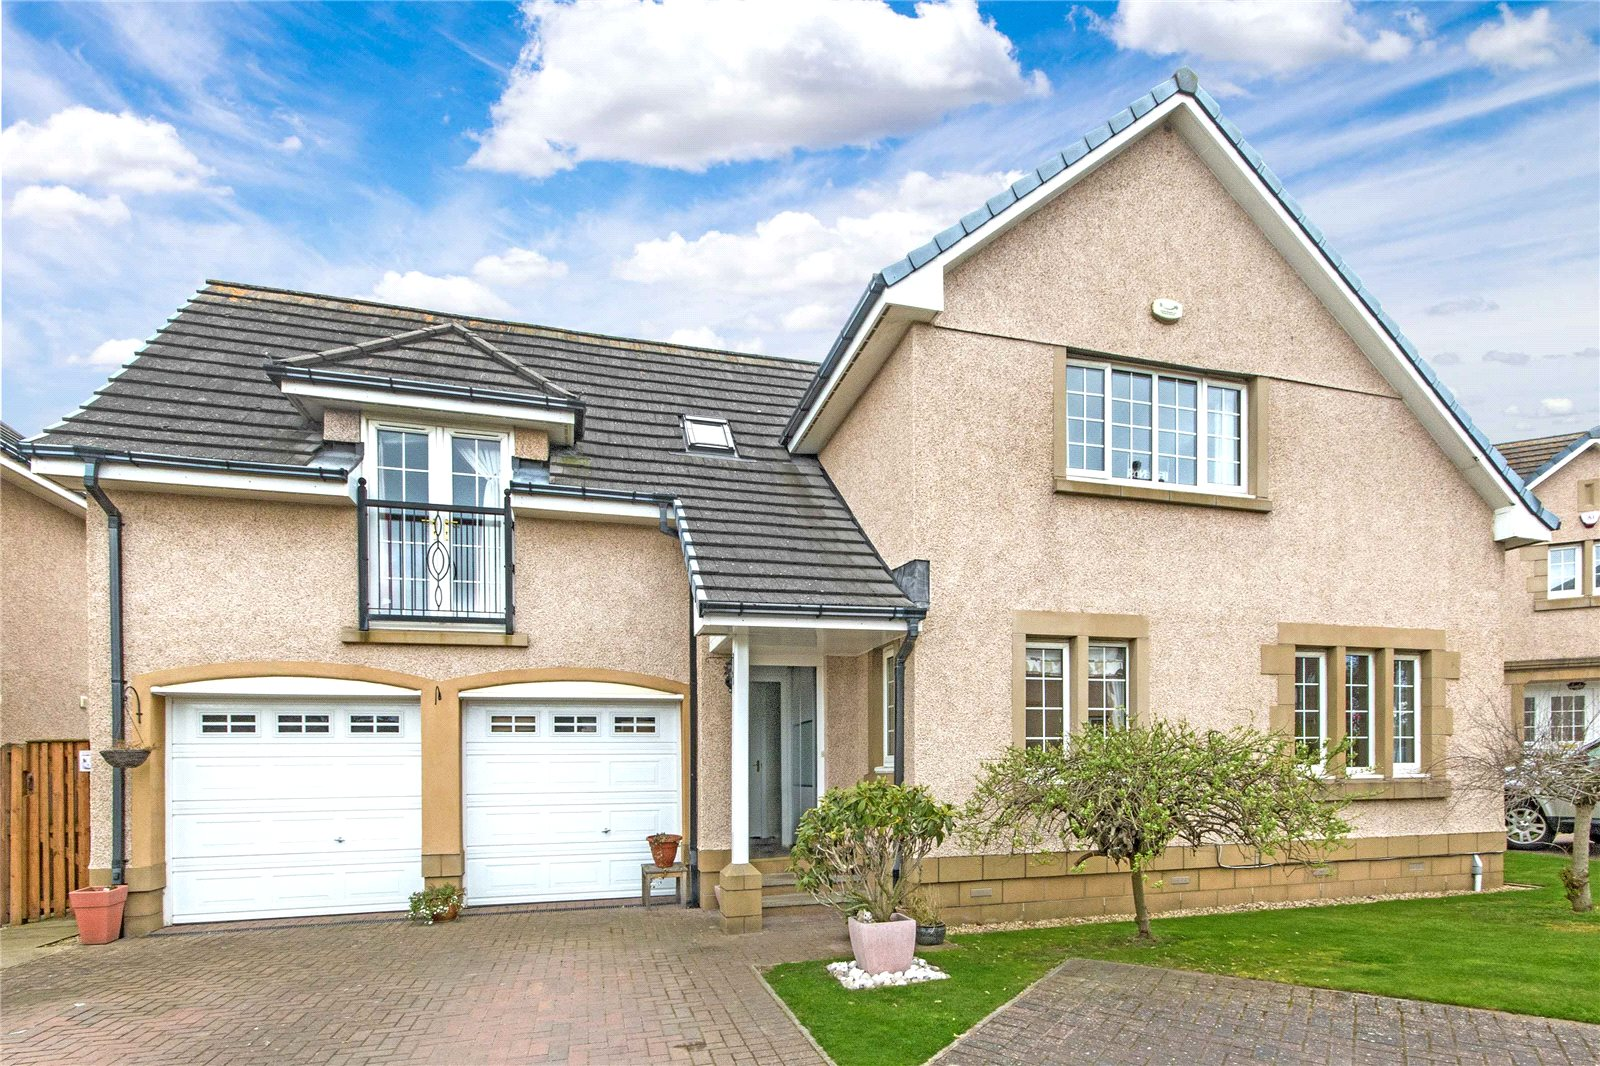 Our Property of the Week: 3 Tranter Crescent, Aberlady